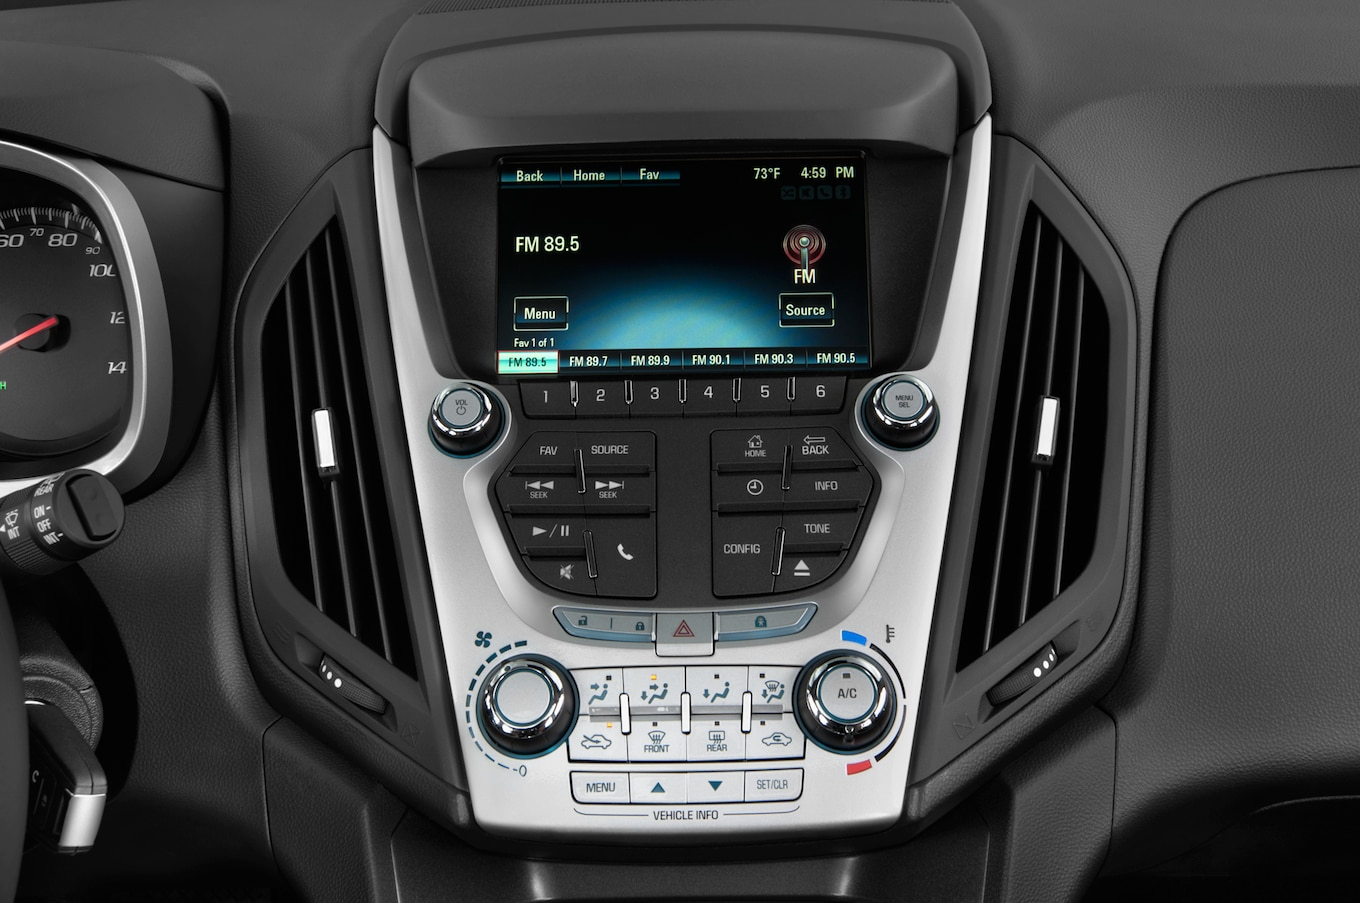 2012 Chevy Sonic Radio Wiring Diagram 2011 Chevrolet Equinox Reviews Research Equinox Prices